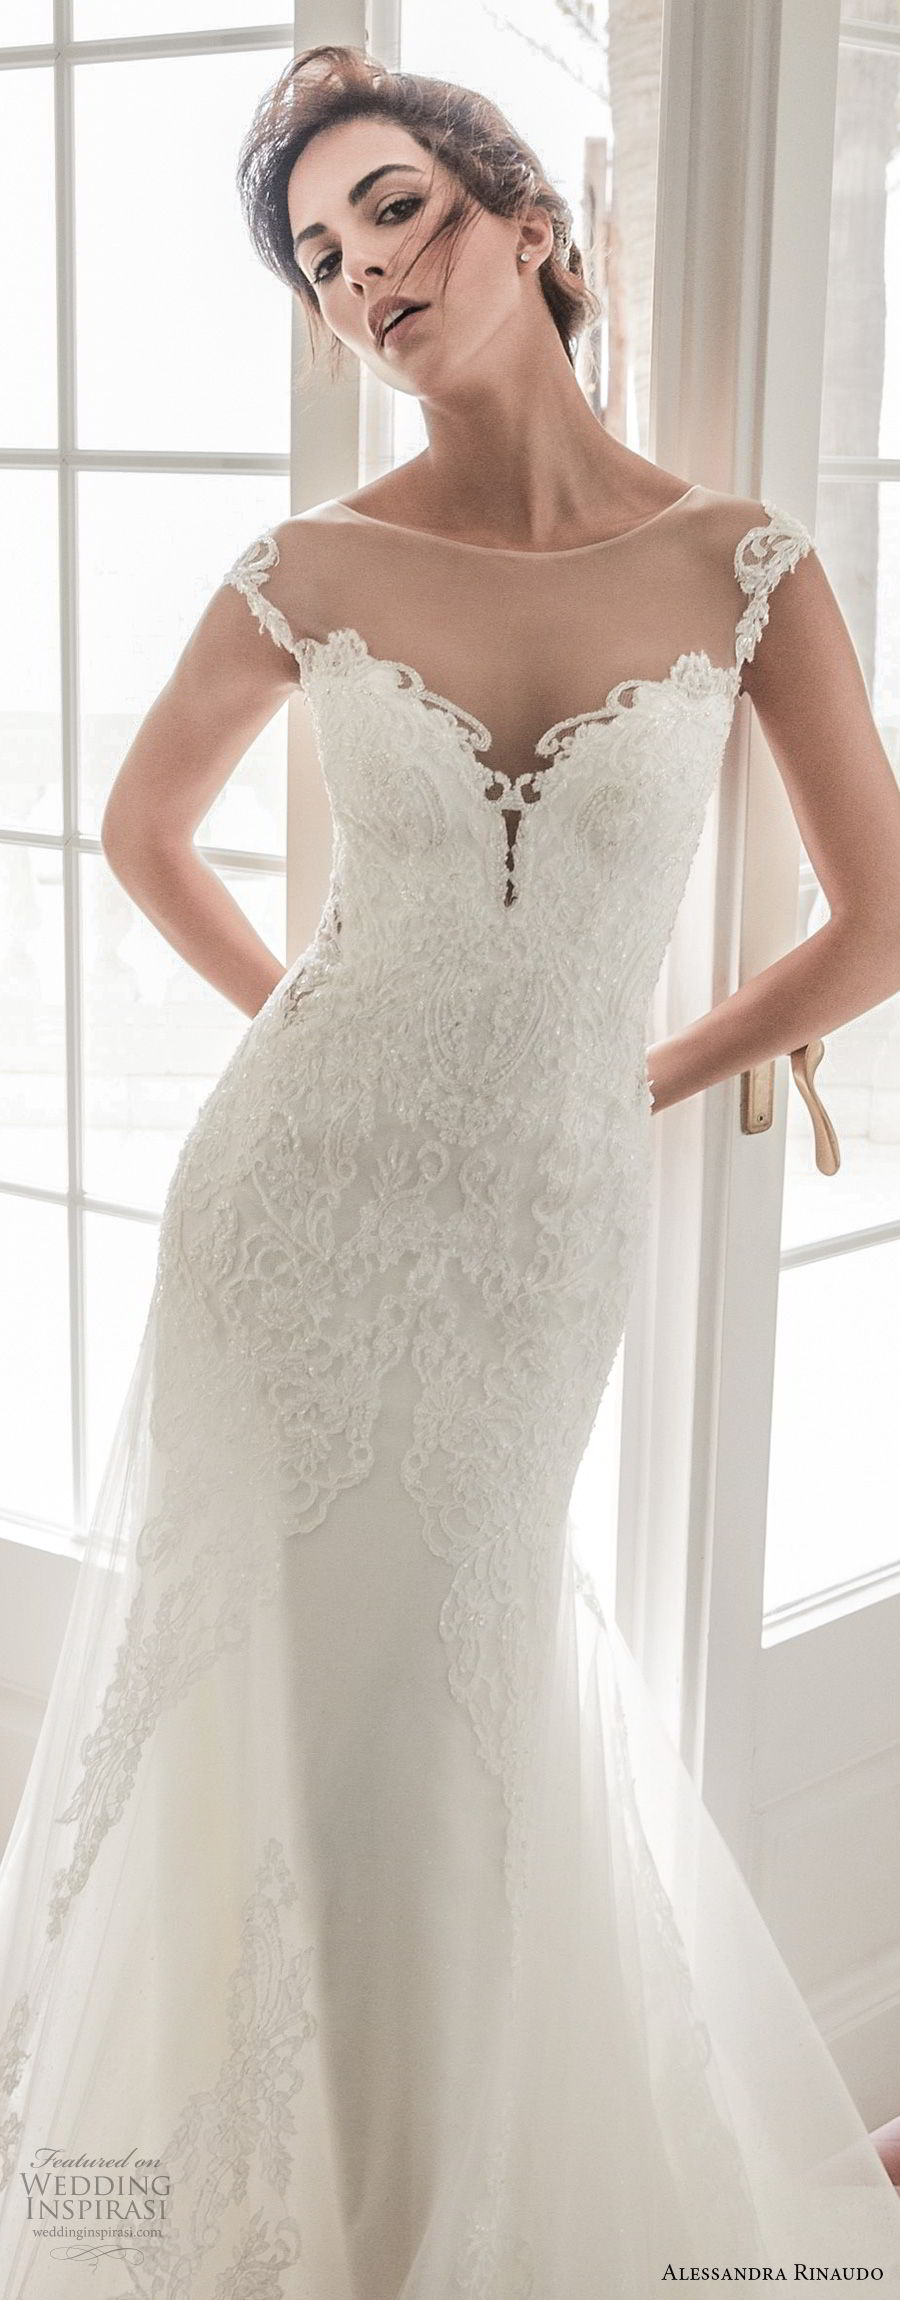 alessandra rinaudo 2018 bridal cap sleeves illusion bateau sweetheart neckline heavily embellished bodice elegant fit and flare mermaid wedding dress sheer lace back chapel train (31) zv